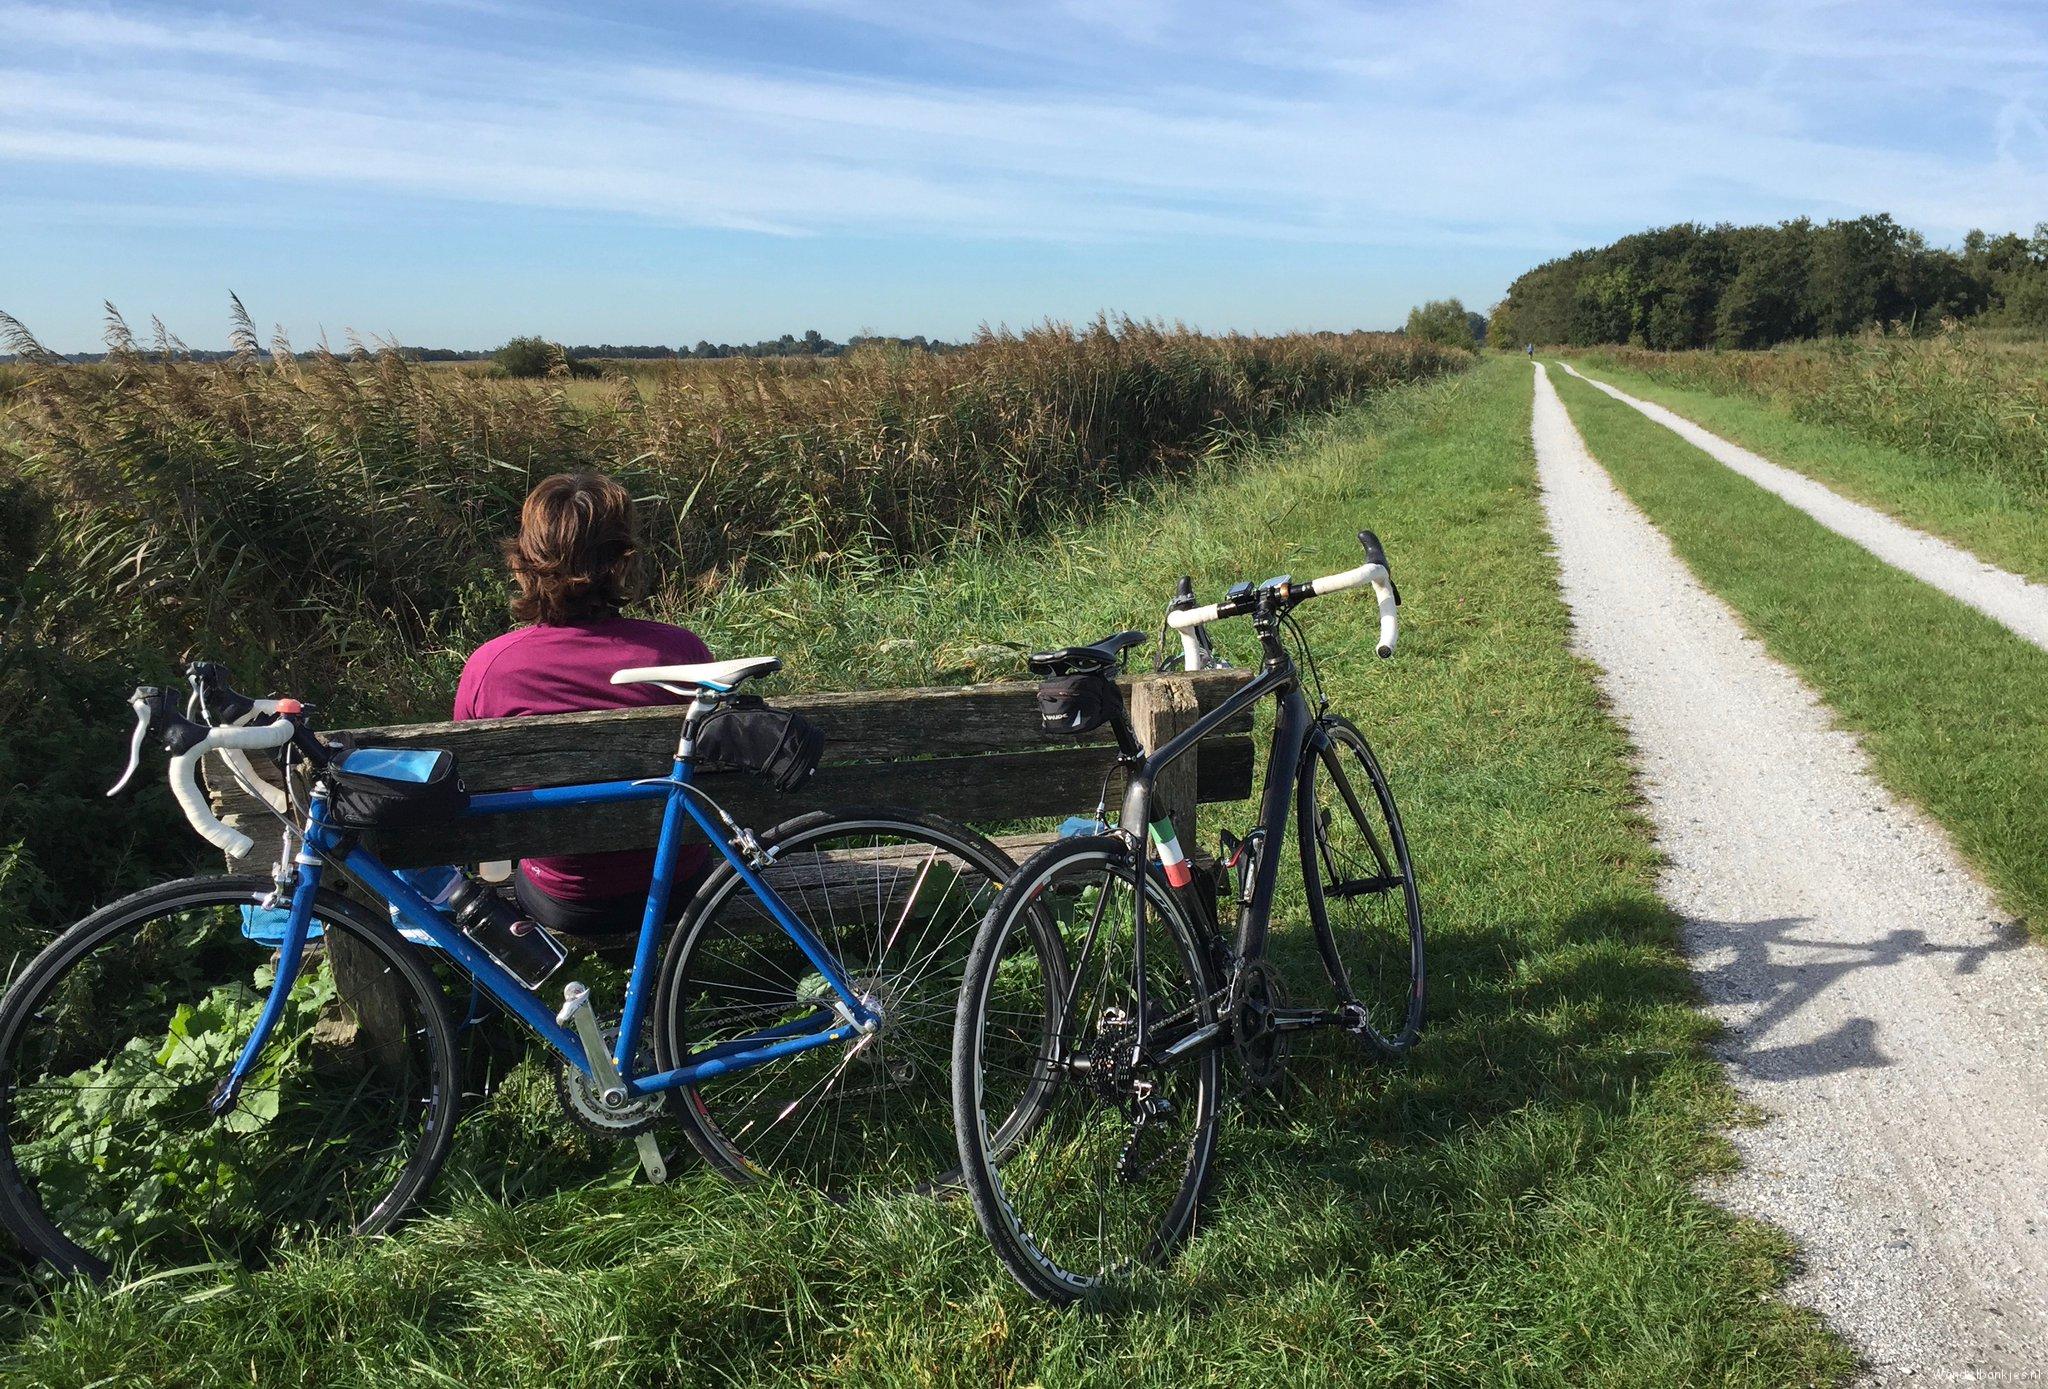 rt-westalet-lovely-bike-or-walking benches-along-the-canal dyke-at-tenhoven-with-free-gooseconcert-https-t-co-g0mwyq3akw